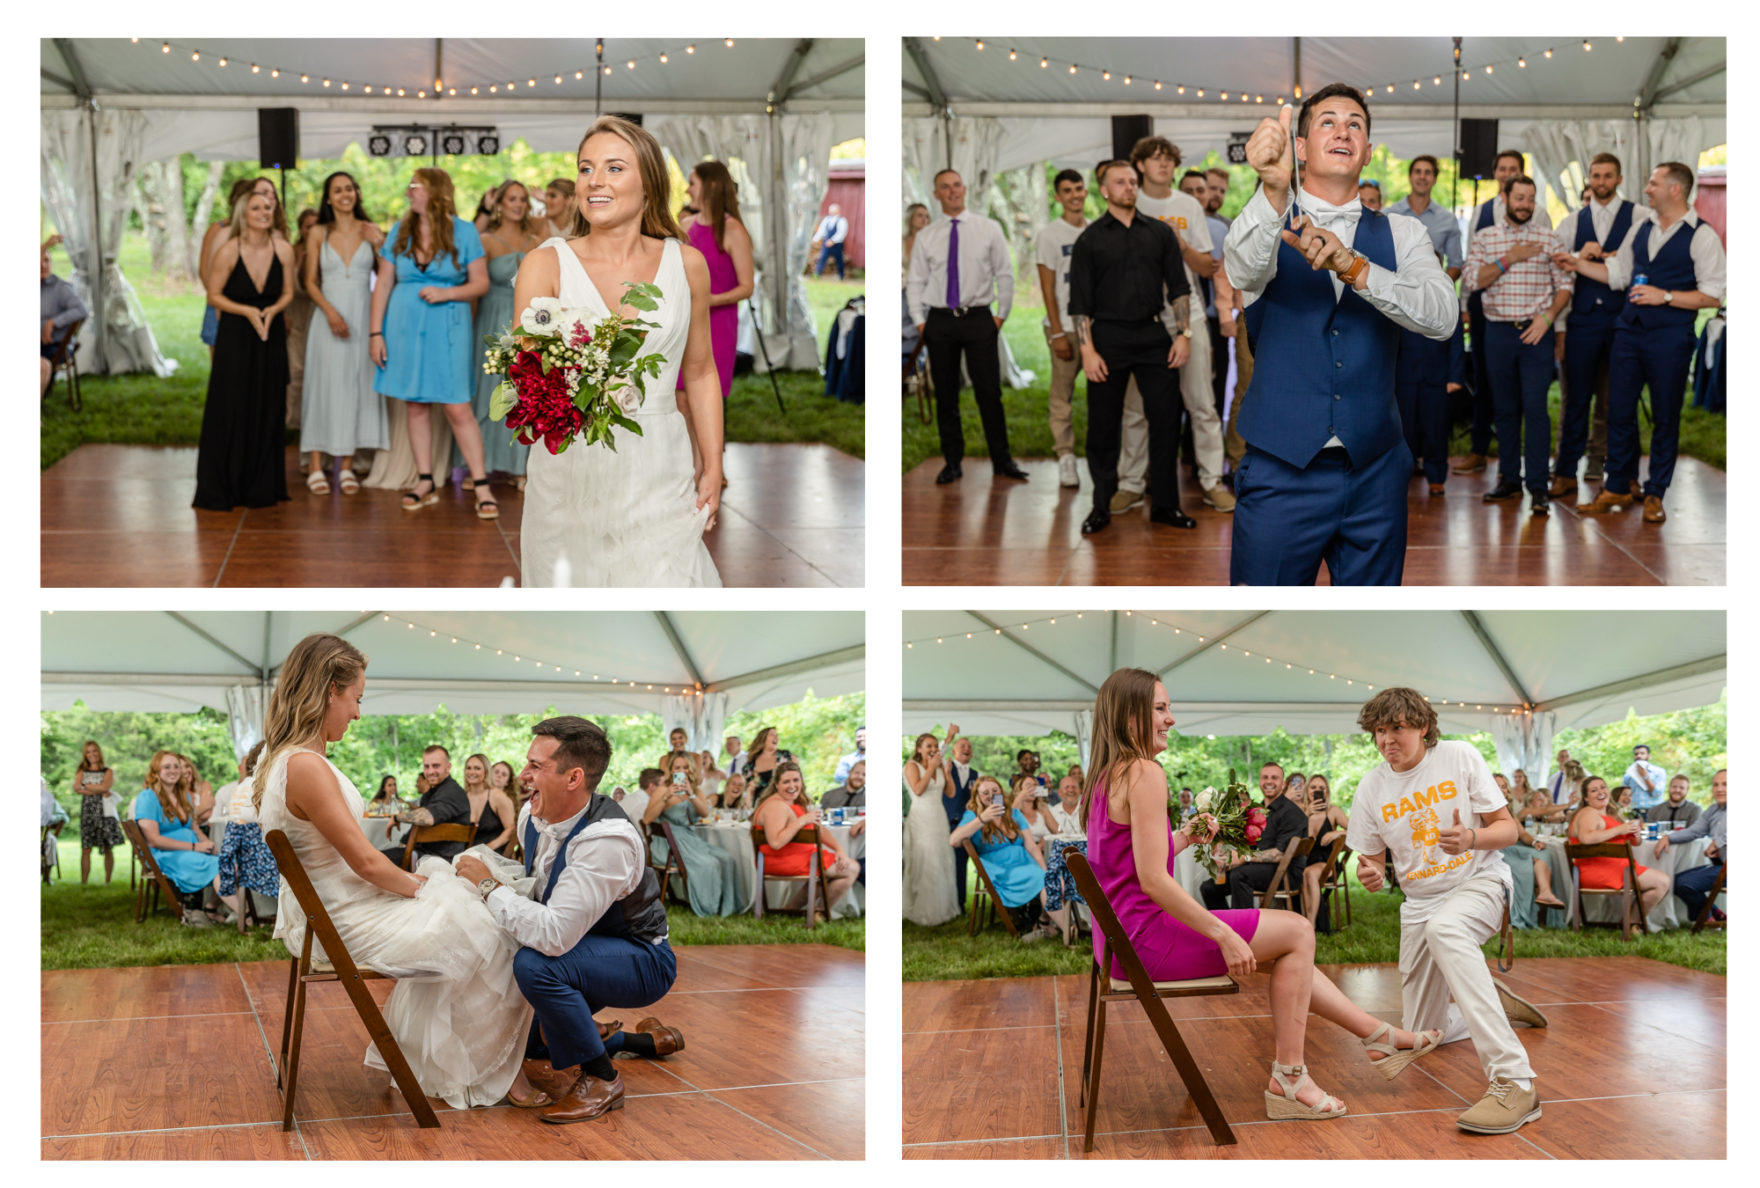 Summer wedding at a private residence farm in Westminster Carroll County Maryland. Cicadas, cows and dogs at the wedding. Pond view reception